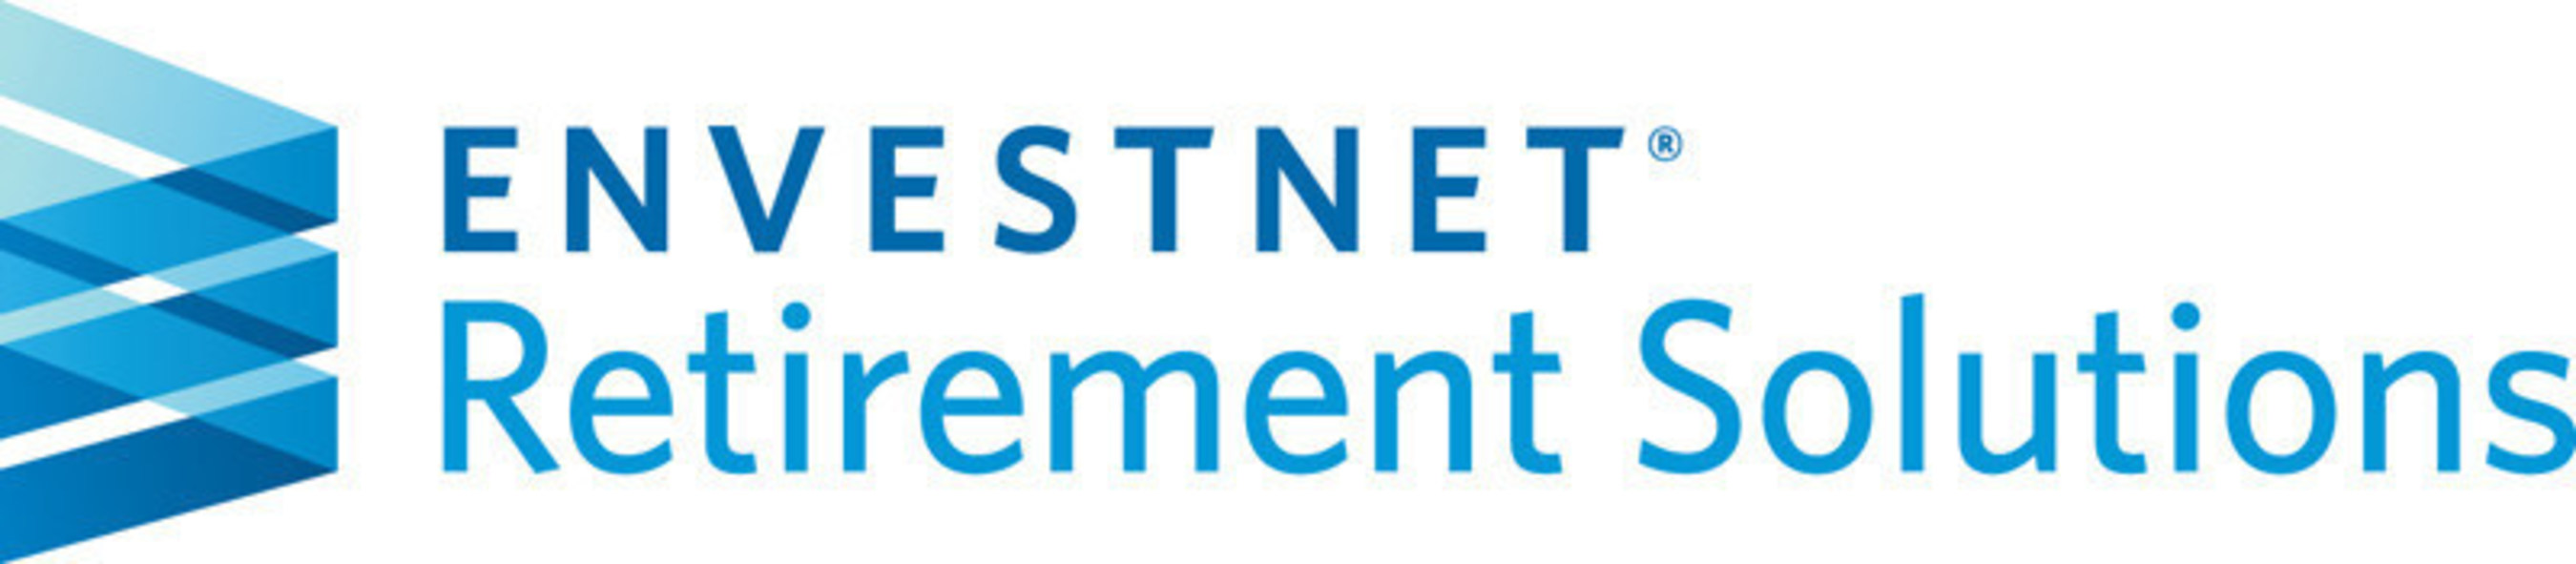 Envestnet | Retirement Solutions (ERS), a subsidiary of Envestnet, Inc., provides retirement advisors with an integrated platform that combines one of the industry's leading practice management technology, research and due diligence, data aggregation, compliance tools, and intelligent managed account solutions.